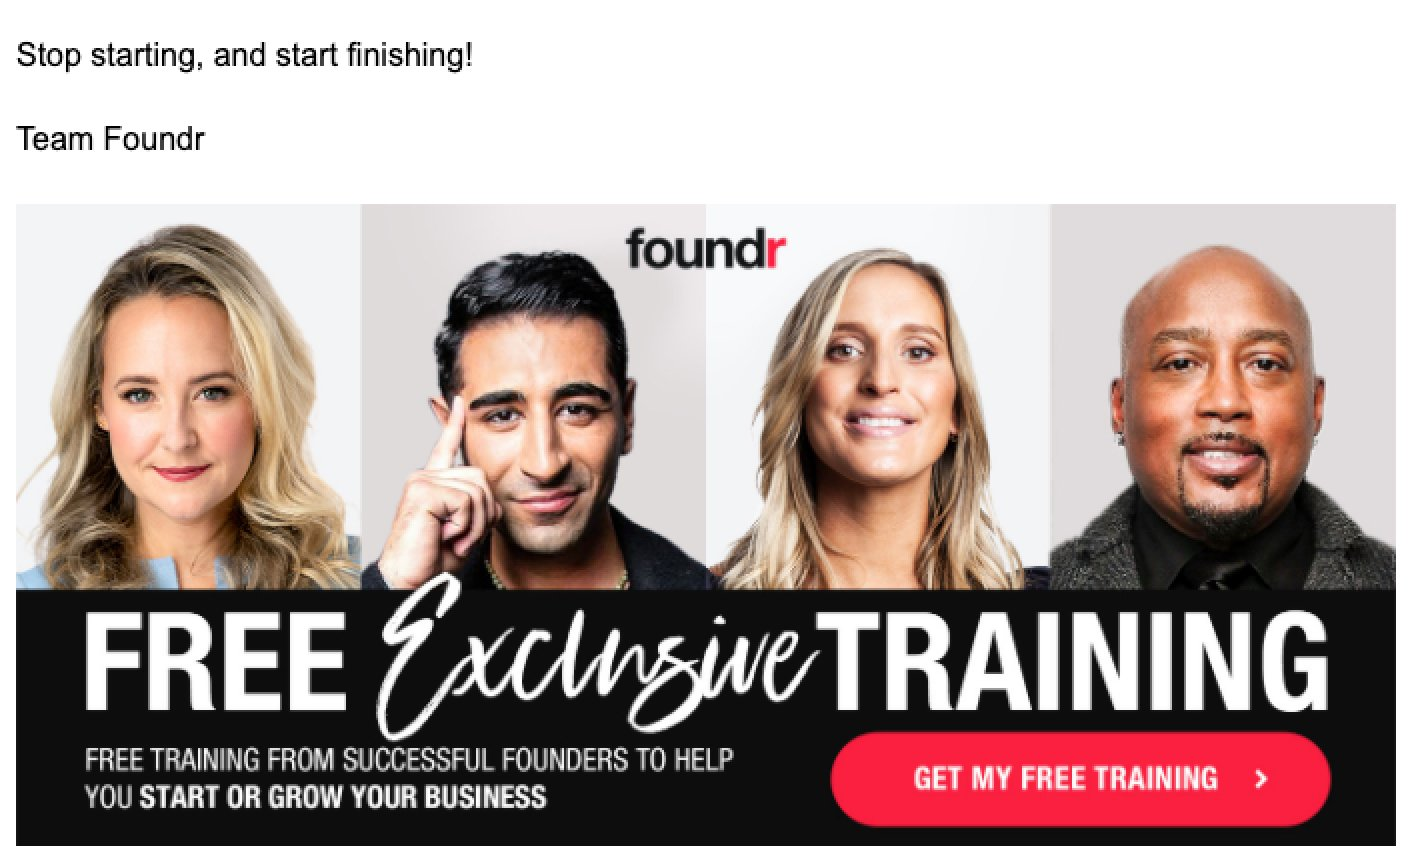 Foundr email sign-off example free exclusive training profile speakers